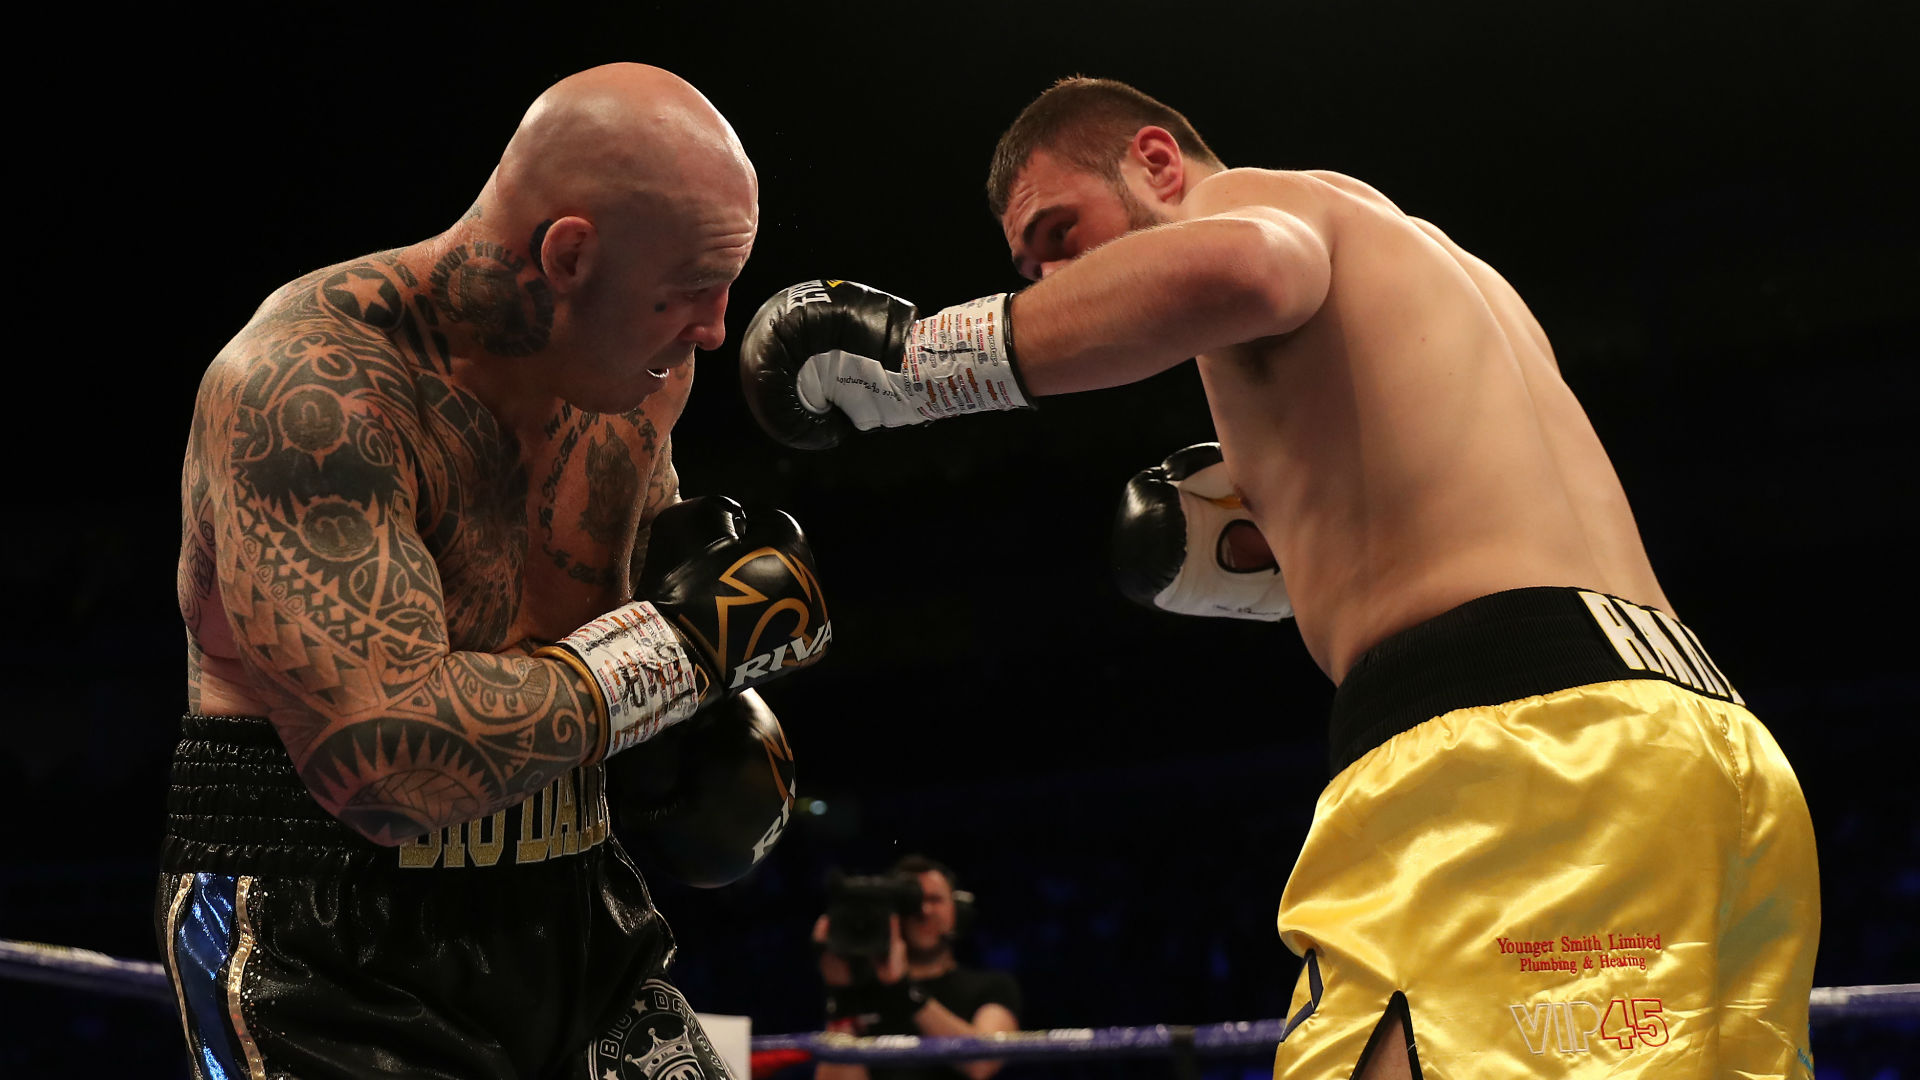 Lucas Browne knocked out by brutal David Allen body shot